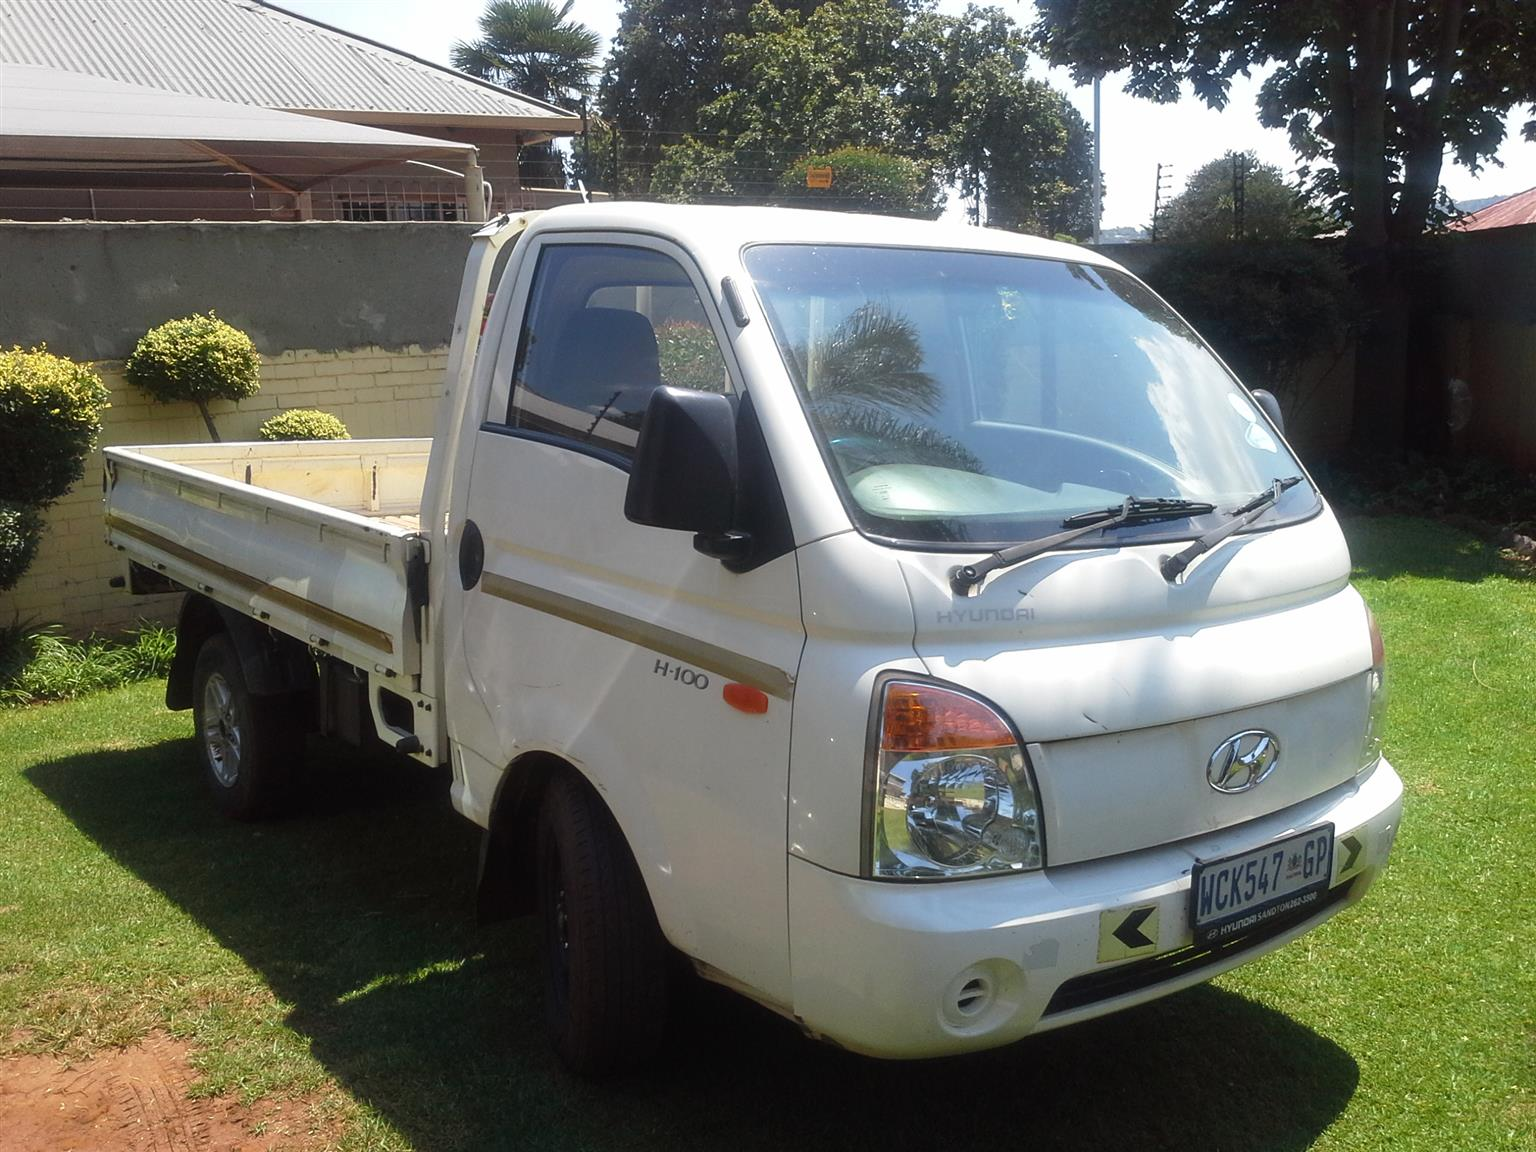 2006 Hyundai H-100 Bakkie 2.6D chassis cab